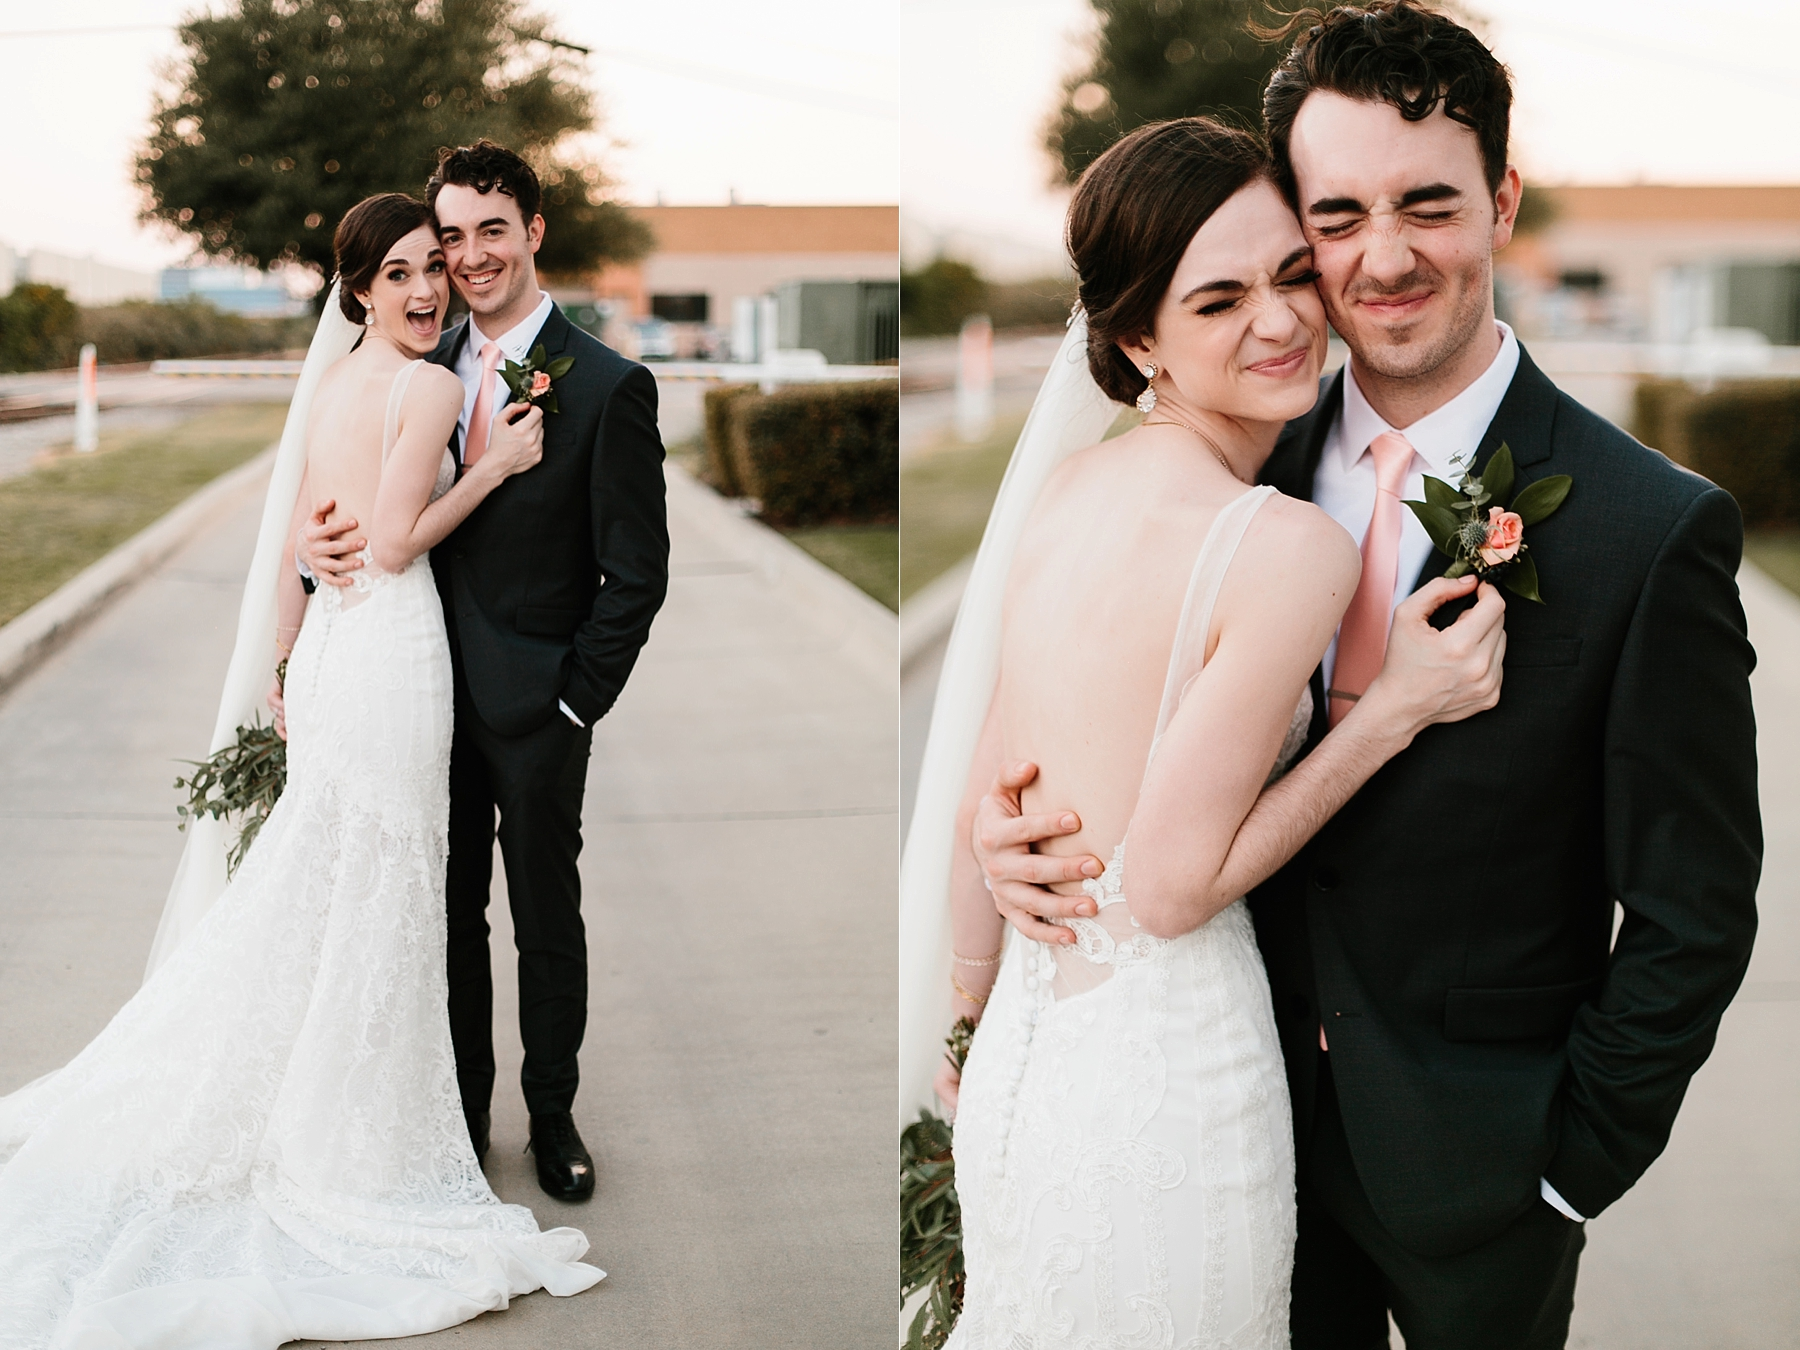 Emily + Caleb _ an elegant, intentional, industrial style wedding with navy + gold accents at 6500 in Dallas, TX by North Texas Wedding Photographer Rachel Meagan Photography _ 130